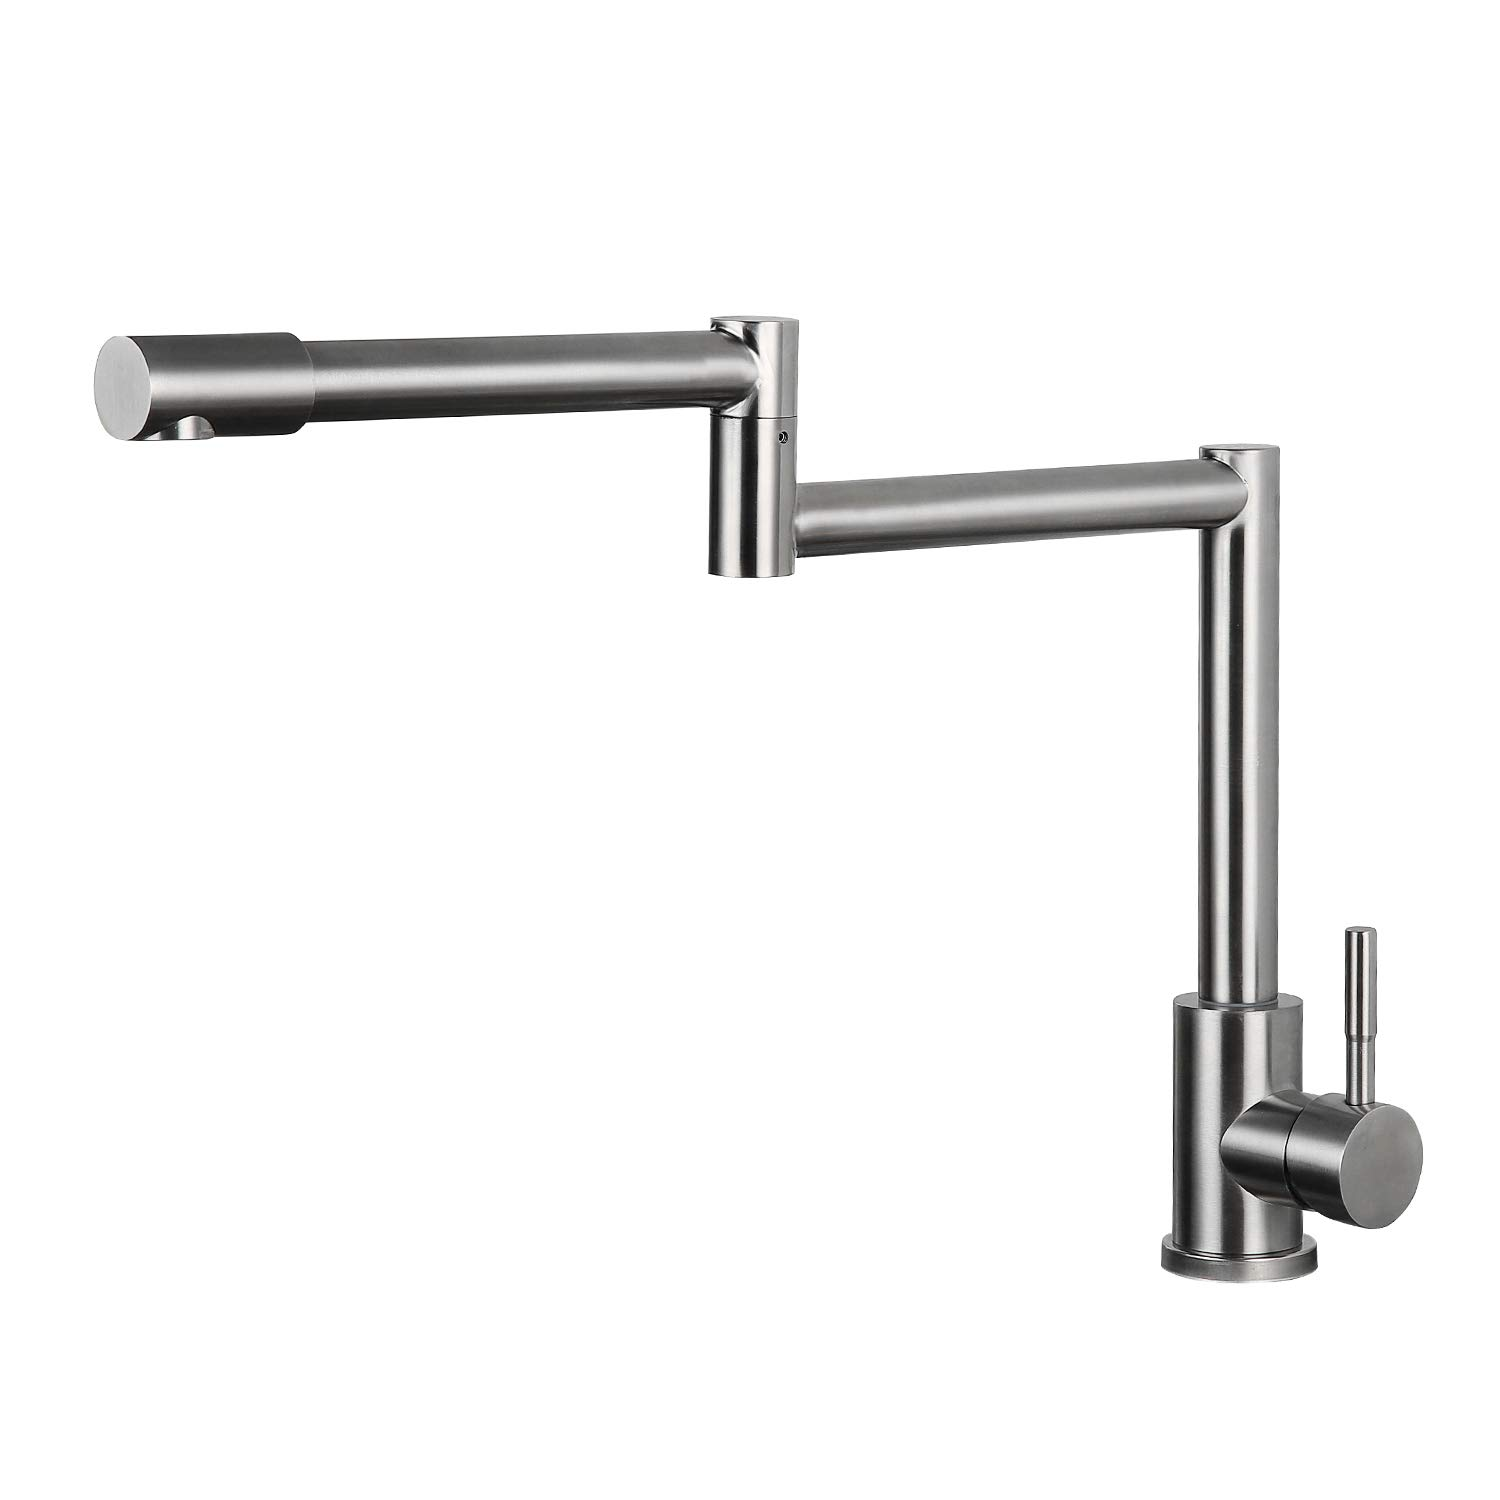 Modern Single Handle Stainless Steel Kitchen Sink Faucets, Brushed Nickel Deck Mount 2 Joints Pot Filler Faucet